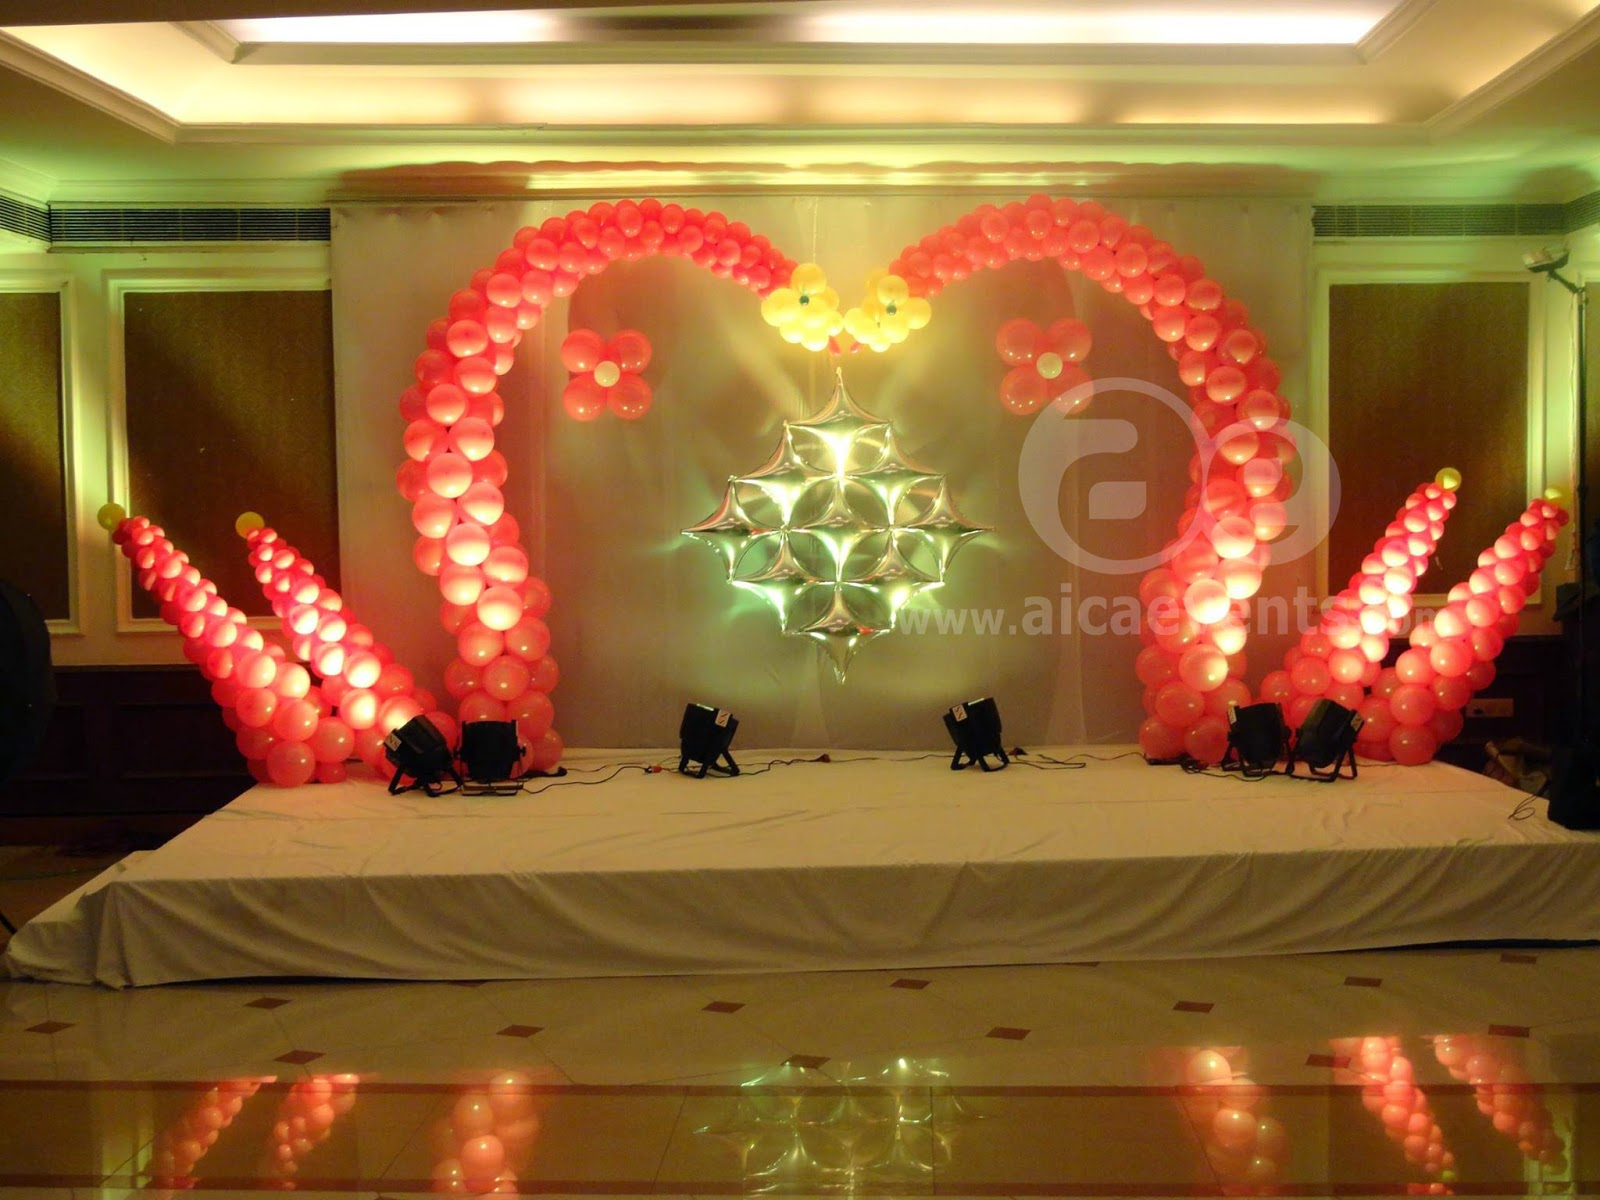 aicaevents balloon decorations with different stage back